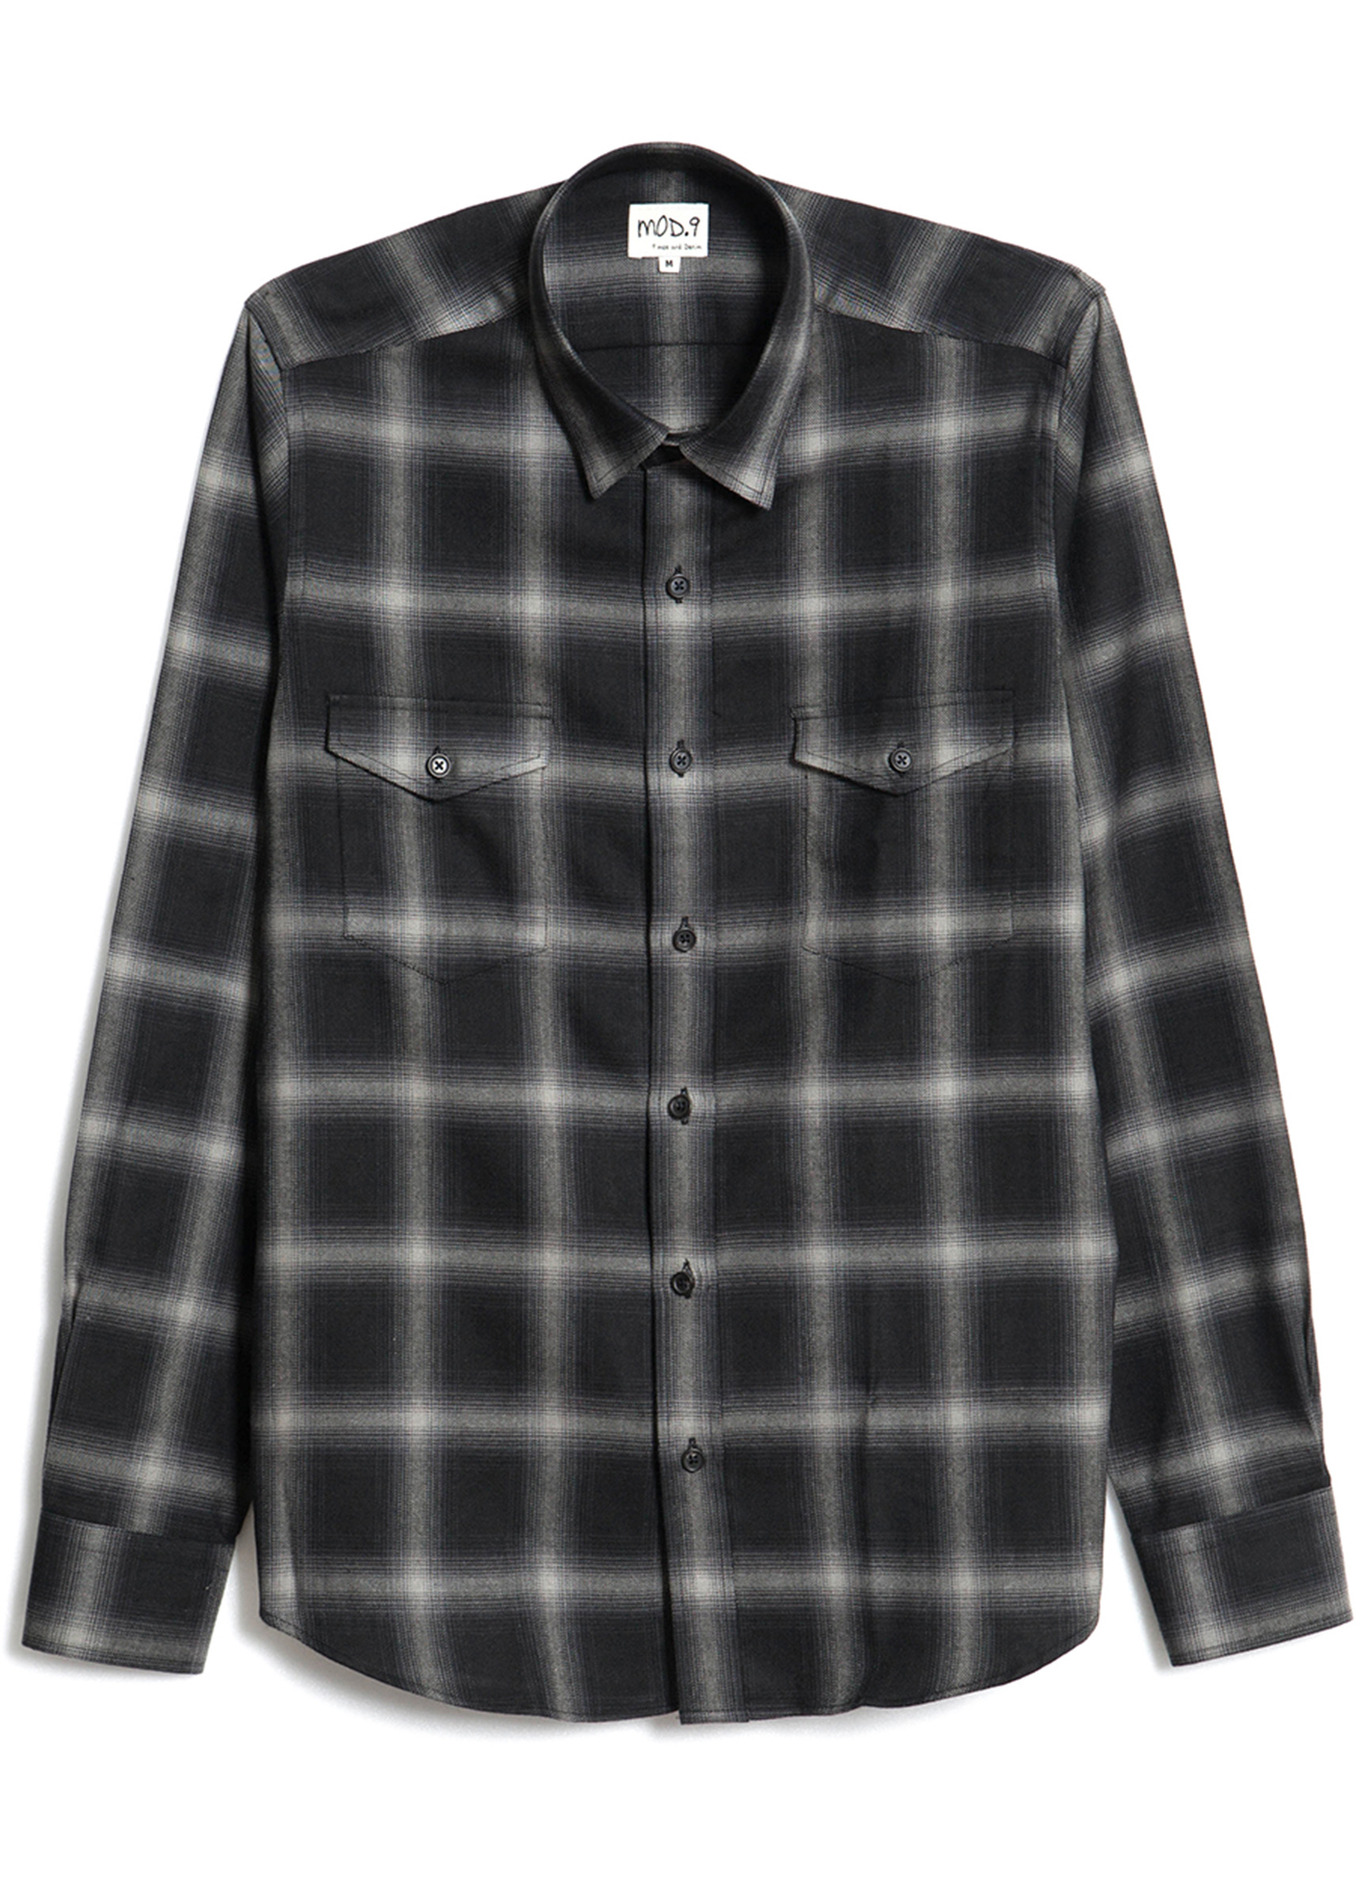 Black Square Flannel - Shirts